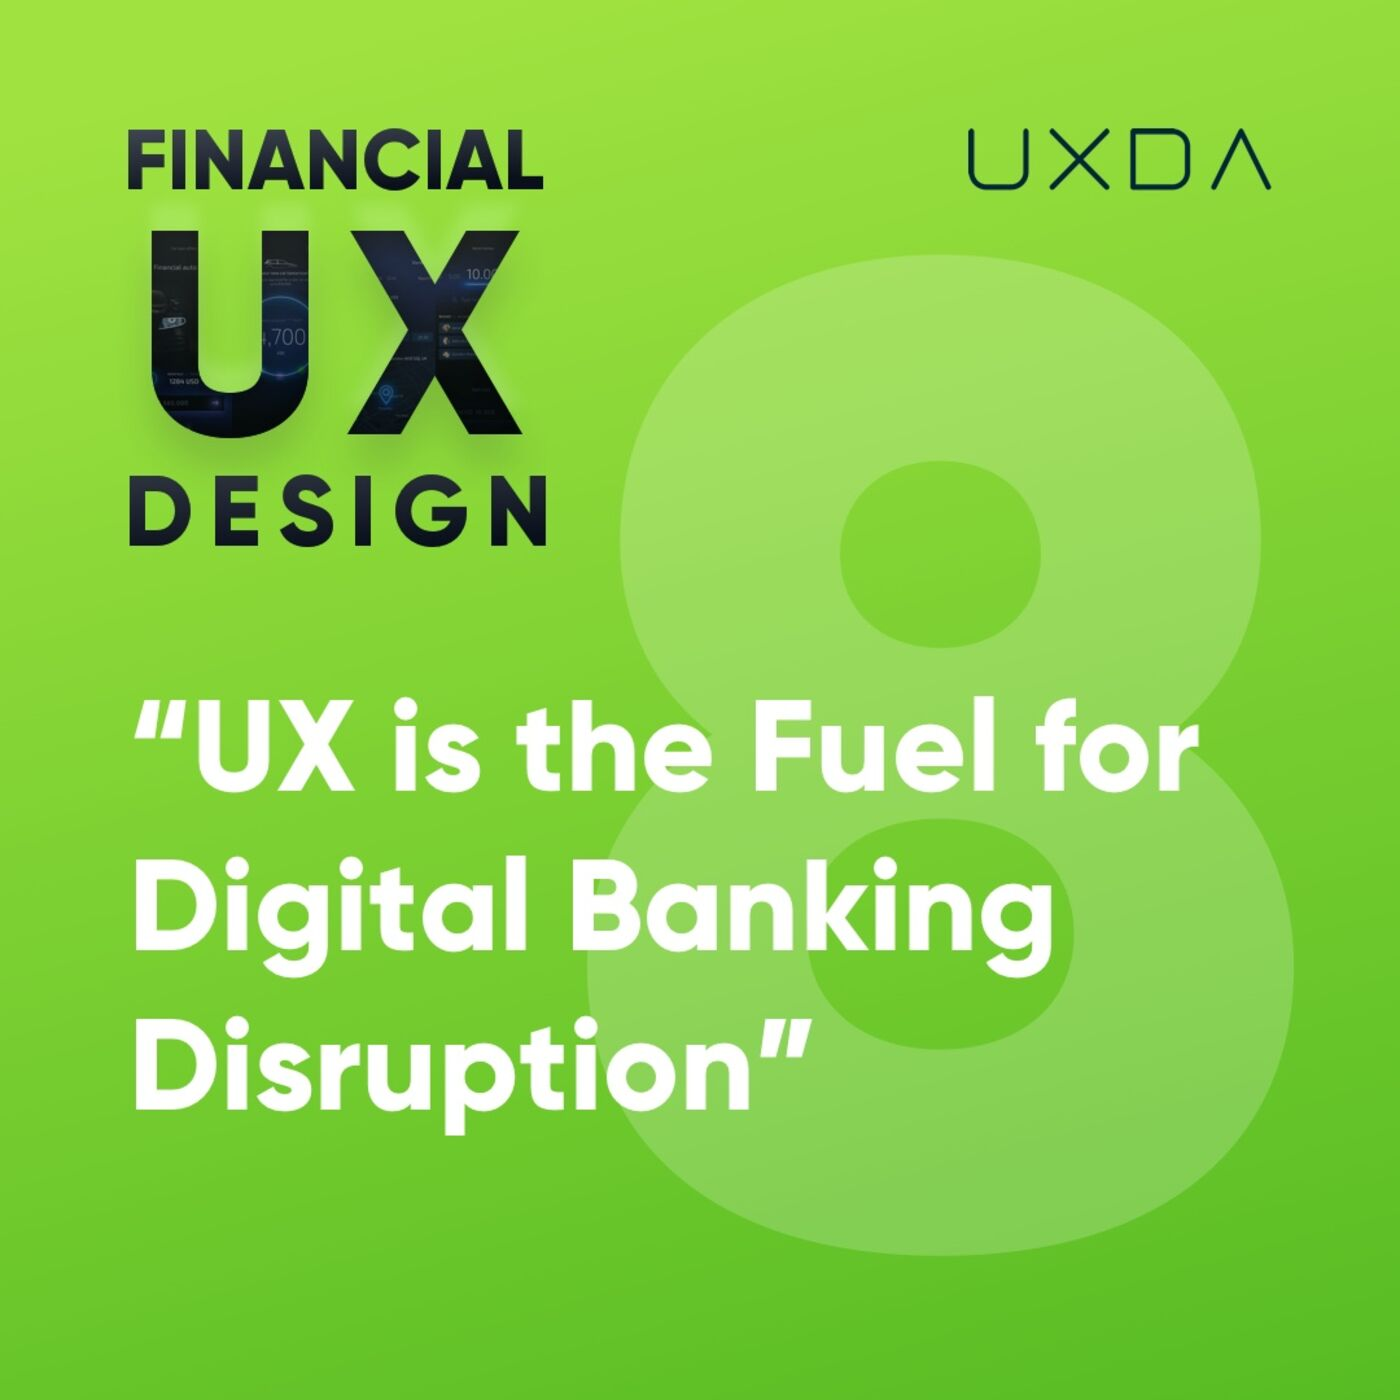 #8 UX is the Fuel for Digital Banking Disruption